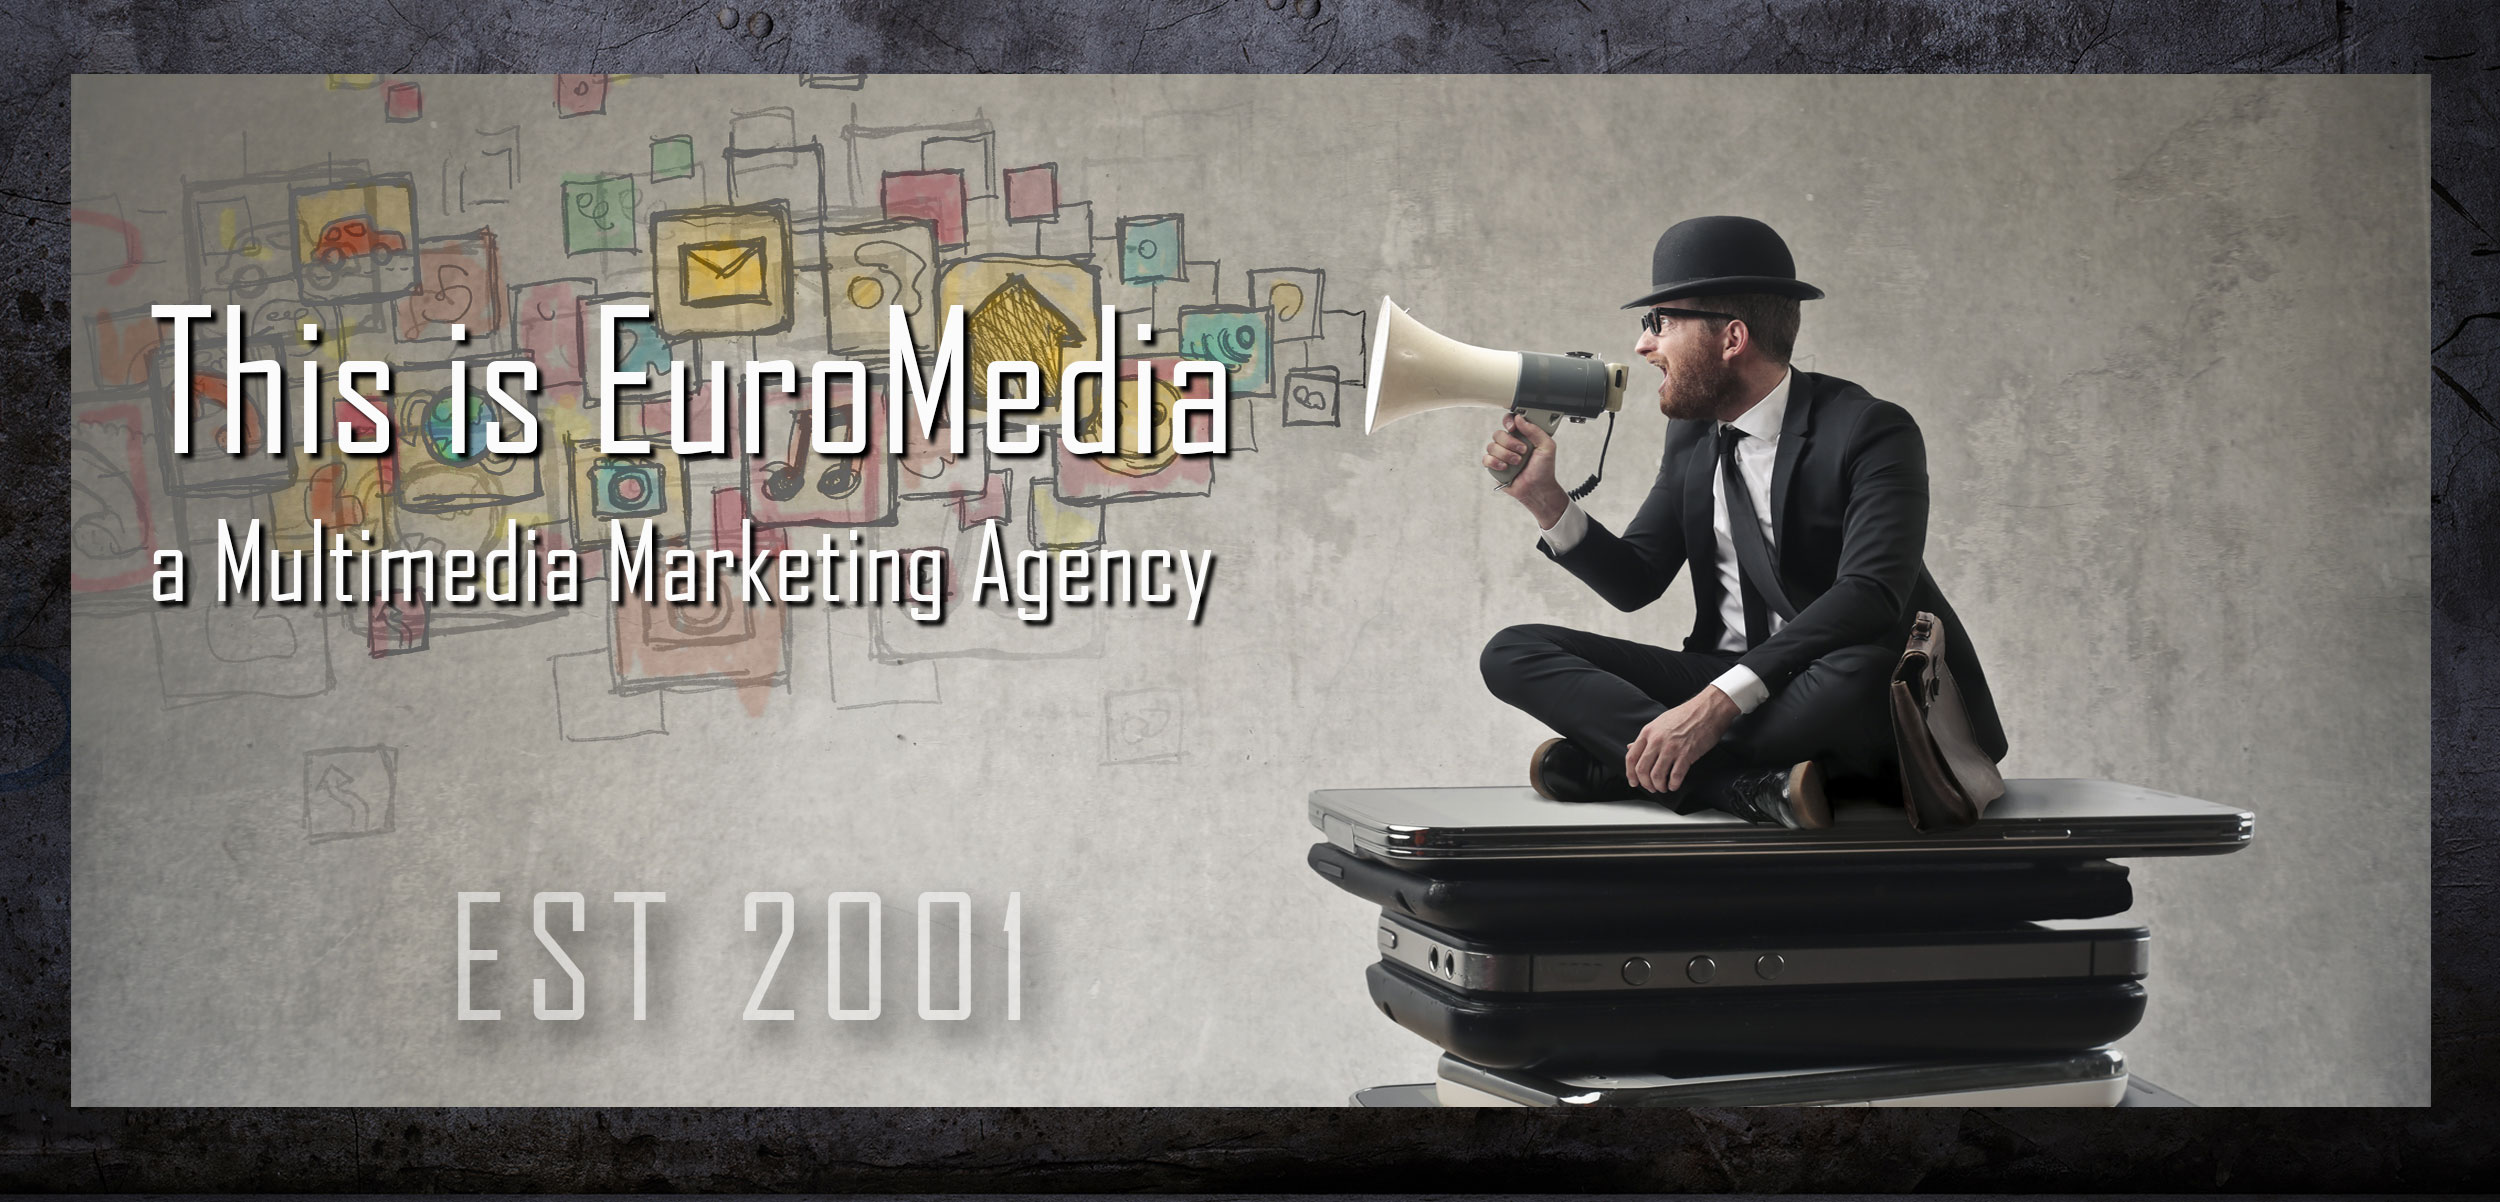 EuroMedia - a Multimedia Marketing Agency